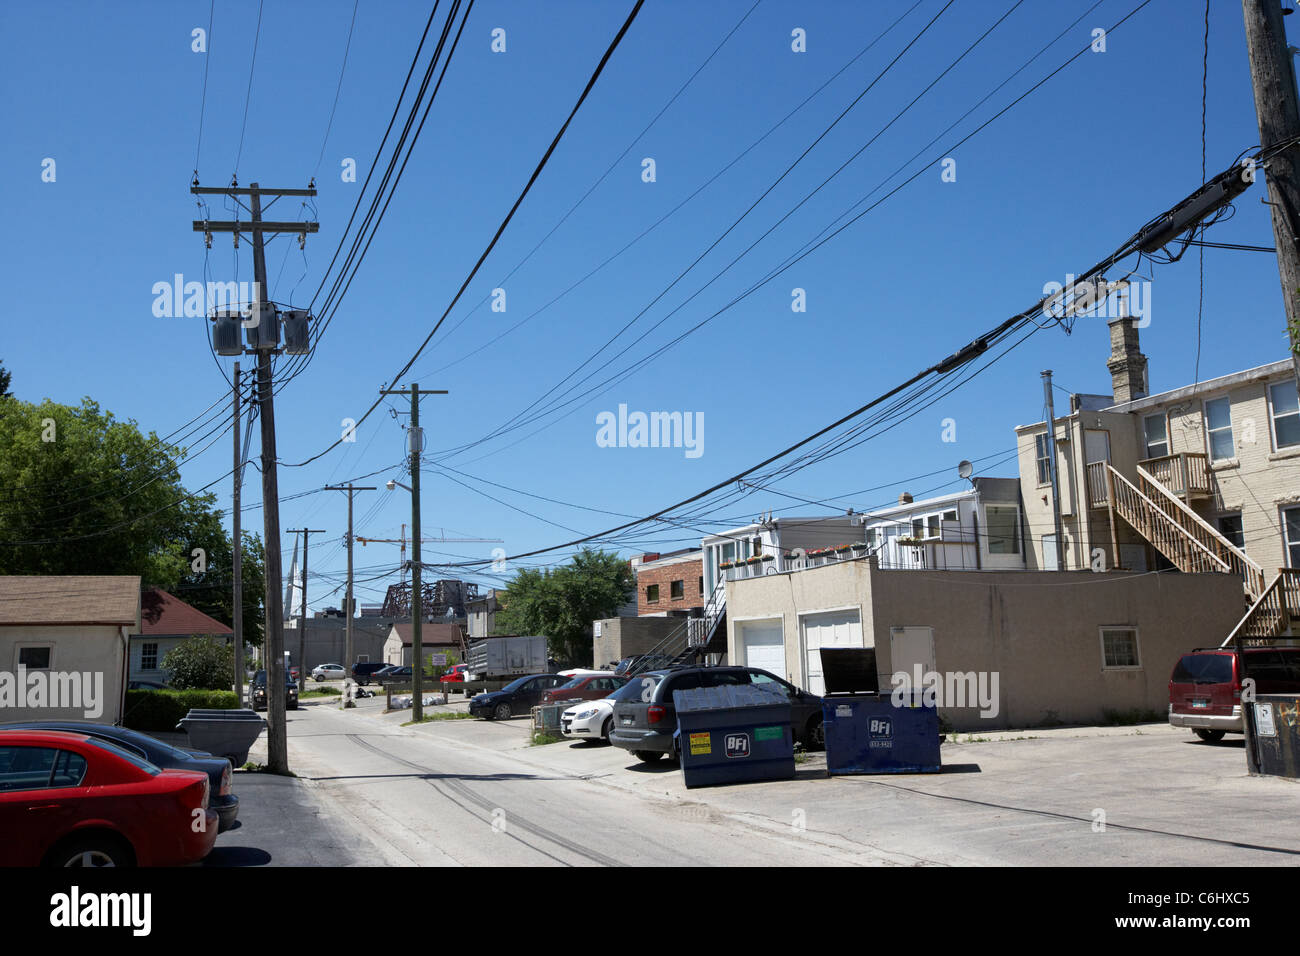 local electricity power lines and distribution in back alley of shops and houses in the french quarter winnipeg - Stock Image